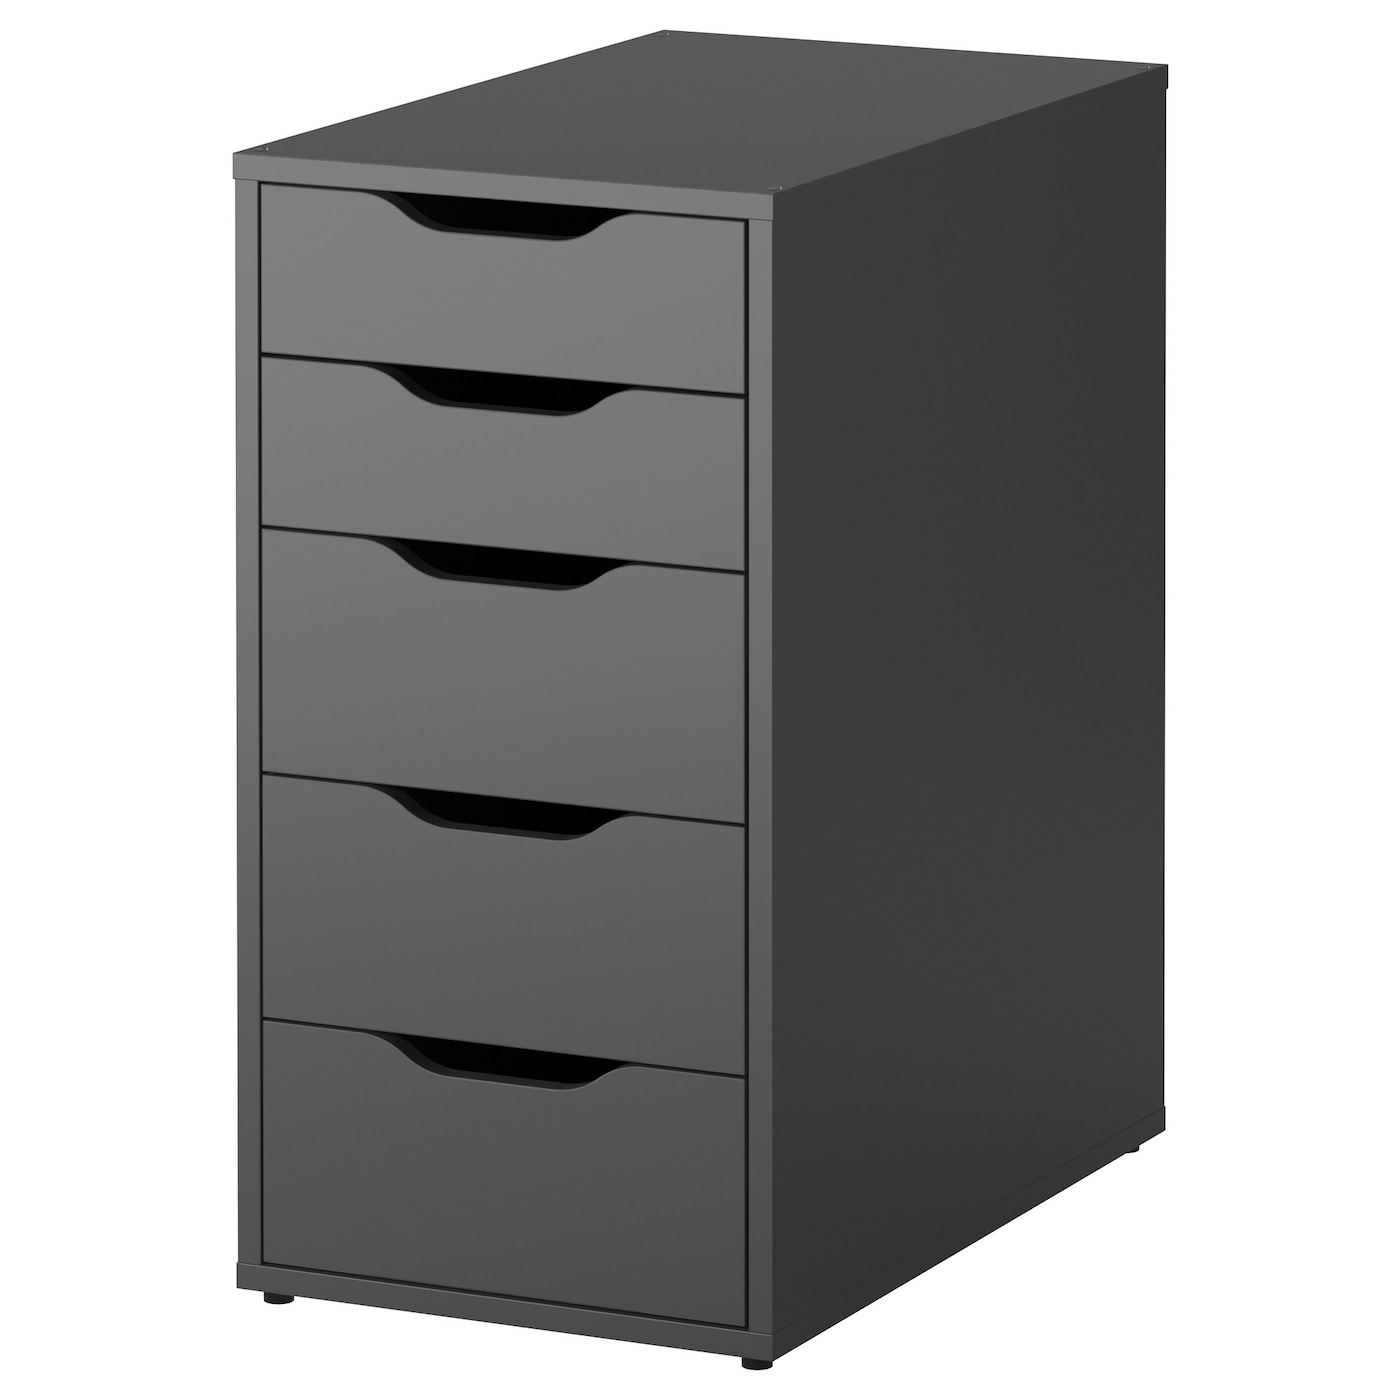 alex drawer unit grey 36x70 cm ikea. Black Bedroom Furniture Sets. Home Design Ideas